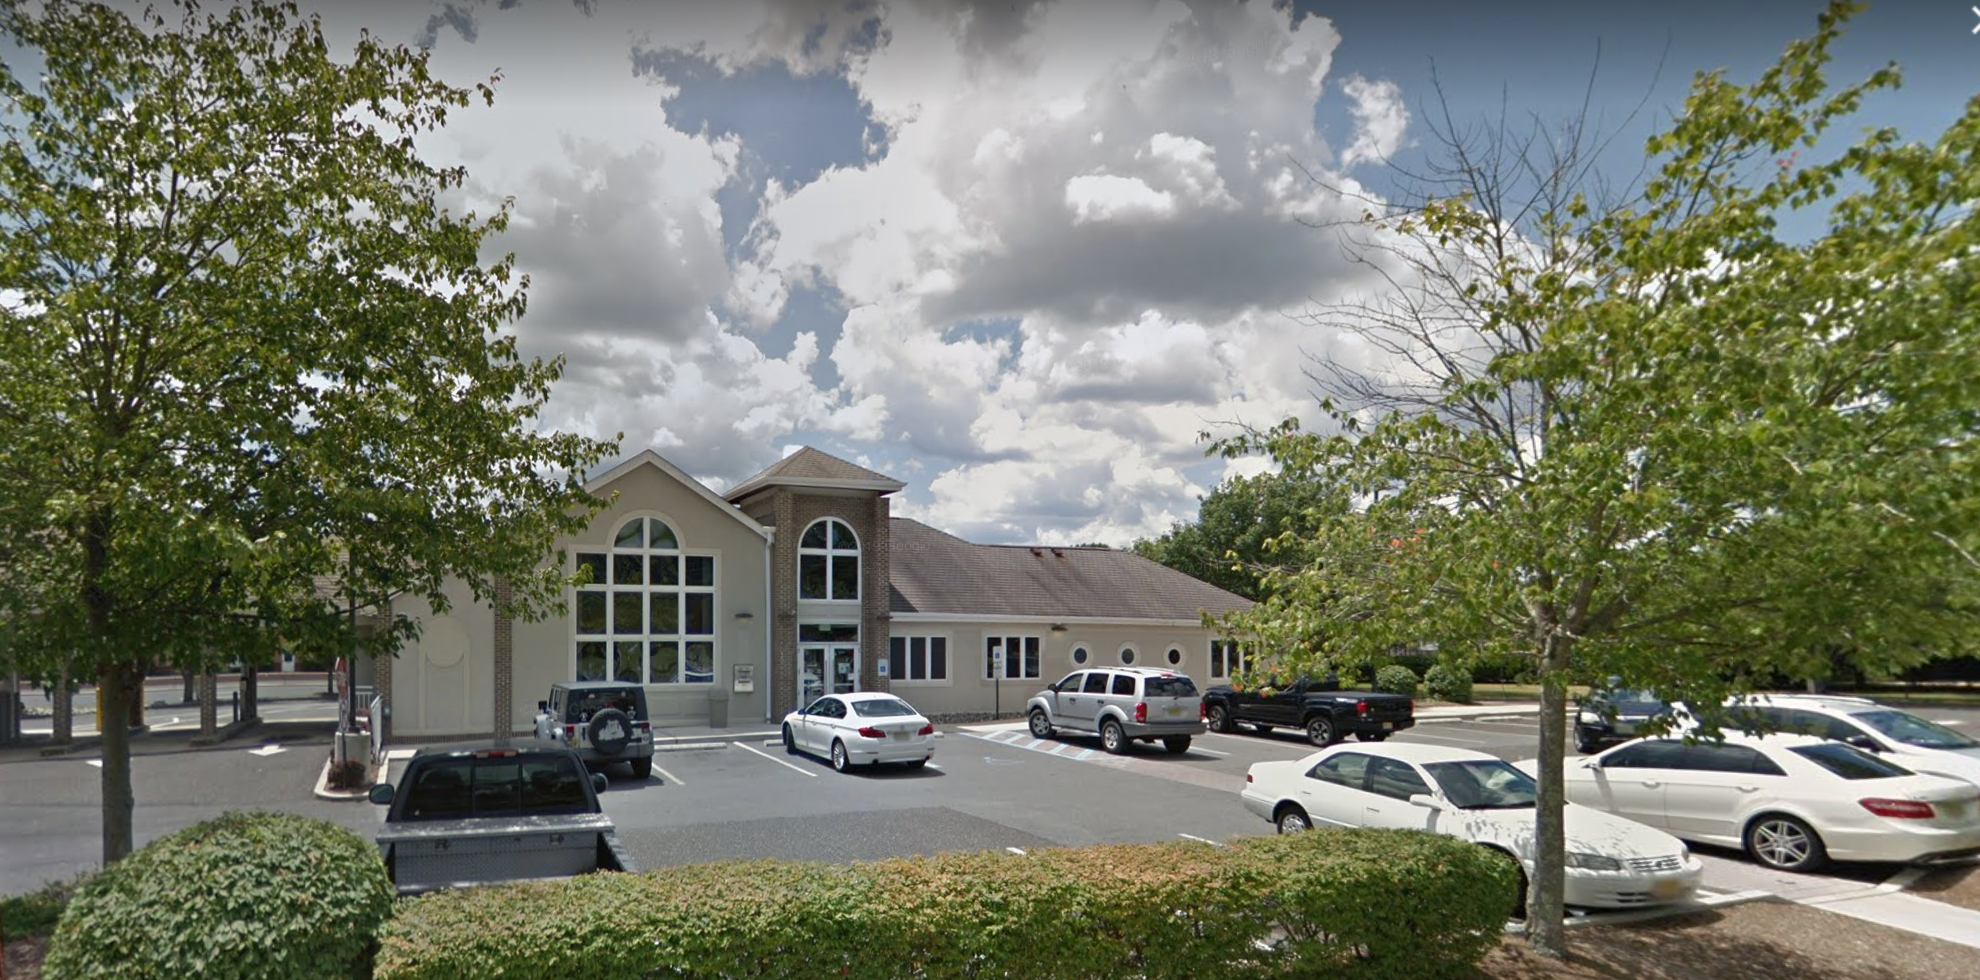 Bank of America financial center with drive-thru ATM | 221 New Jersey Ave, Absecon, NJ 08201